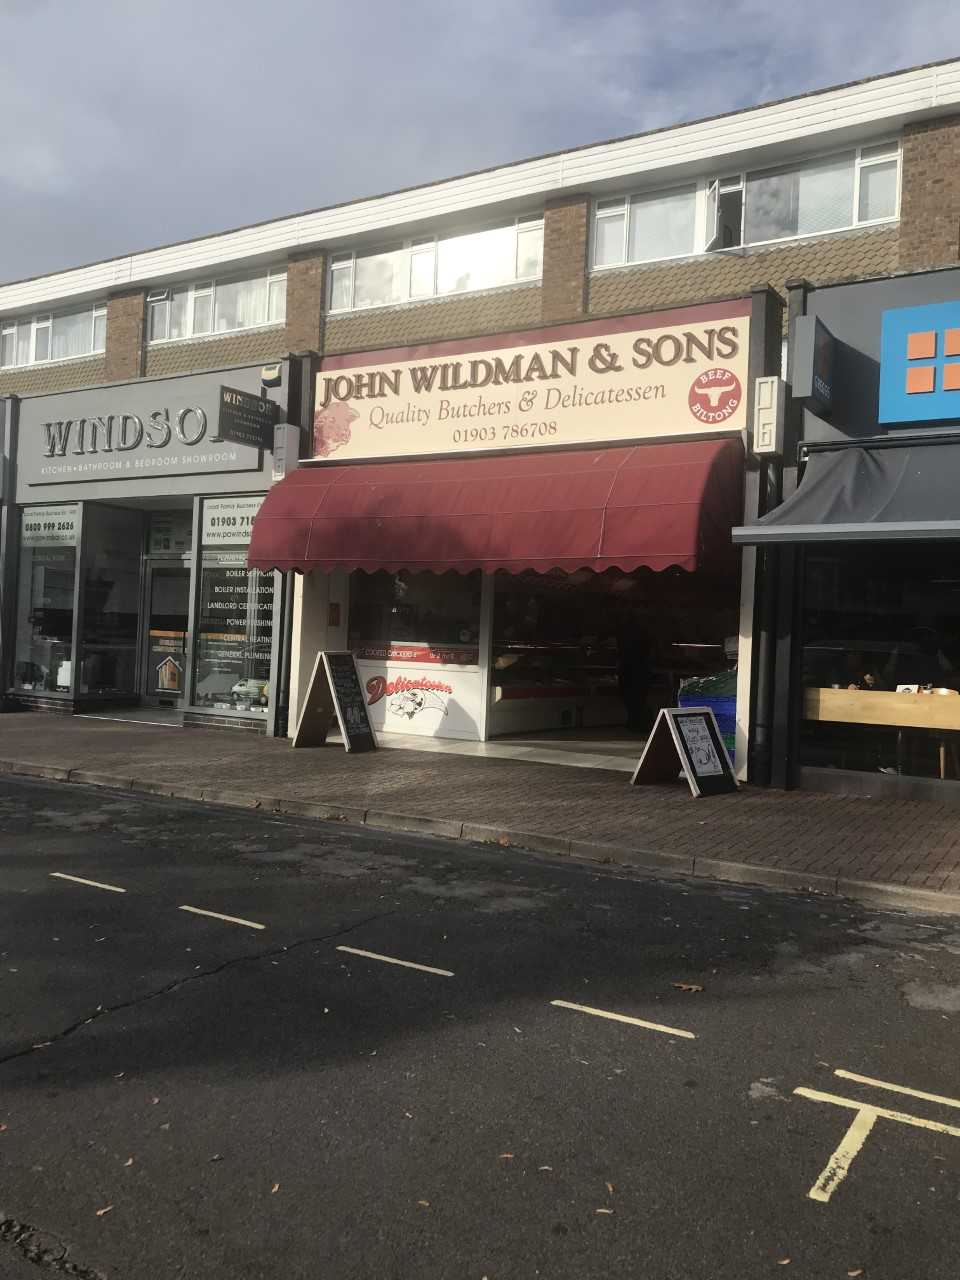 John Wildman & Sons in Rustington (1)